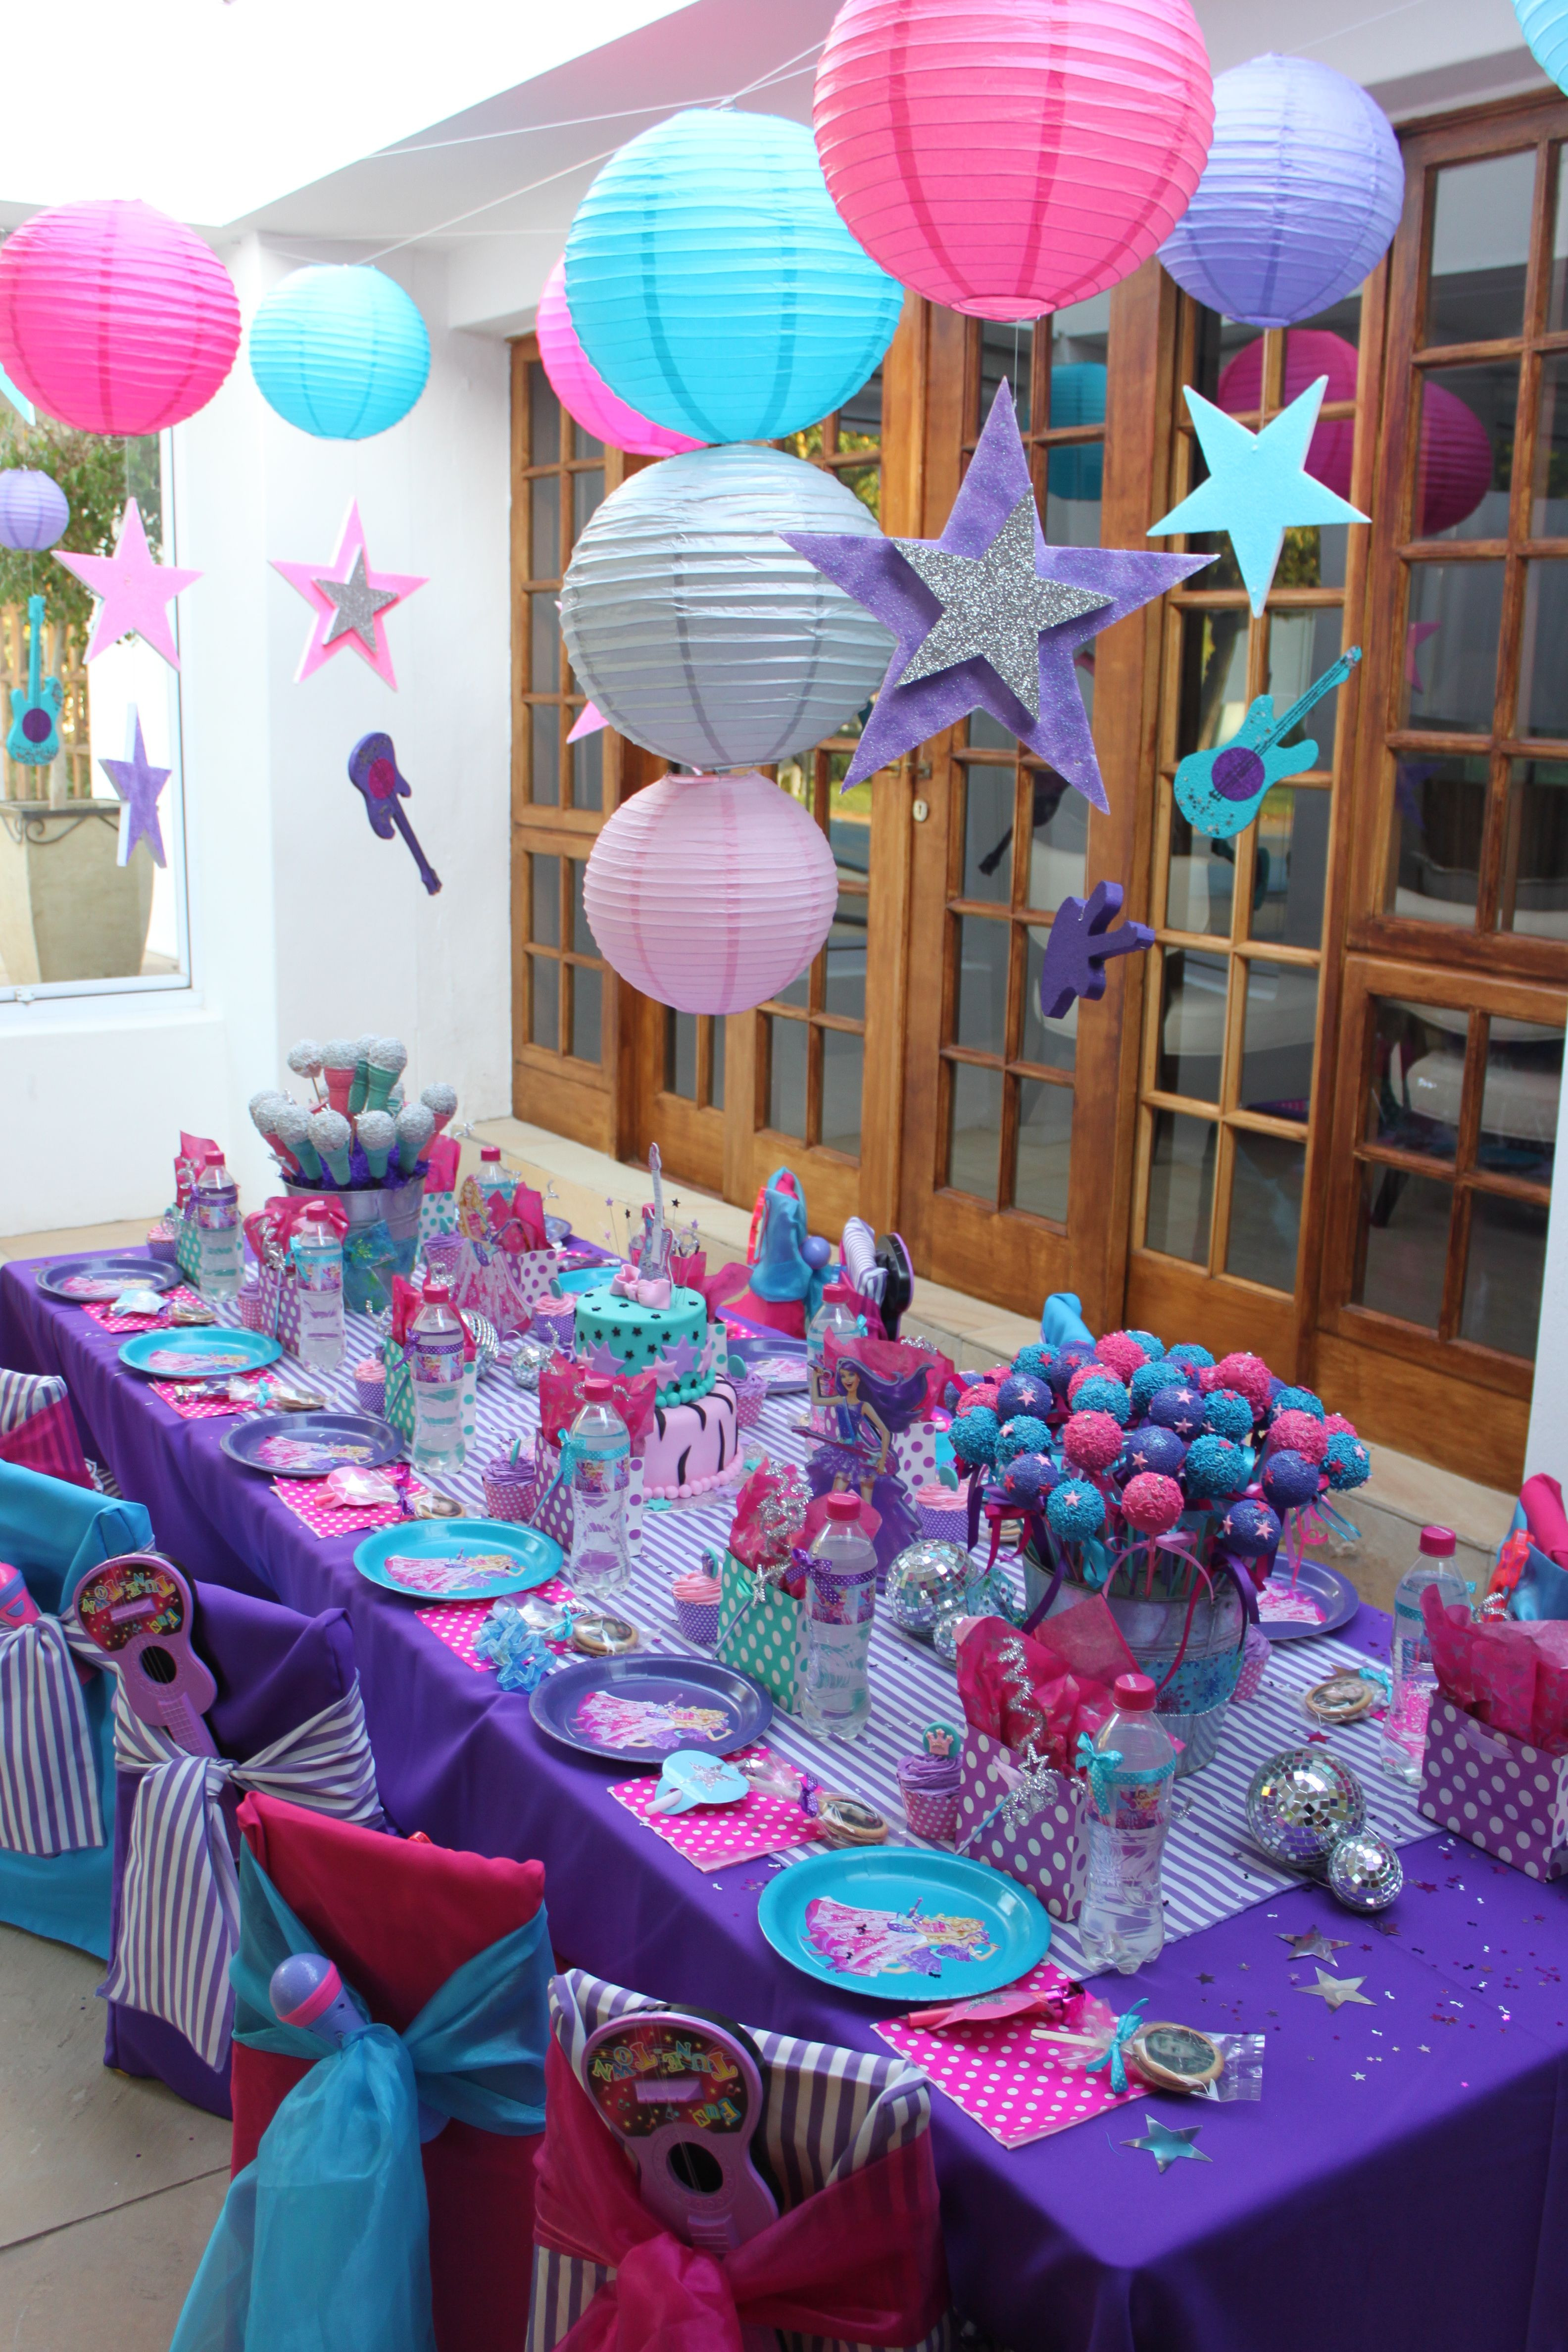 Best ideas about Girls Birthday Party Decorations . Save or Pin Cute simple decorations for a party Just change the Now.